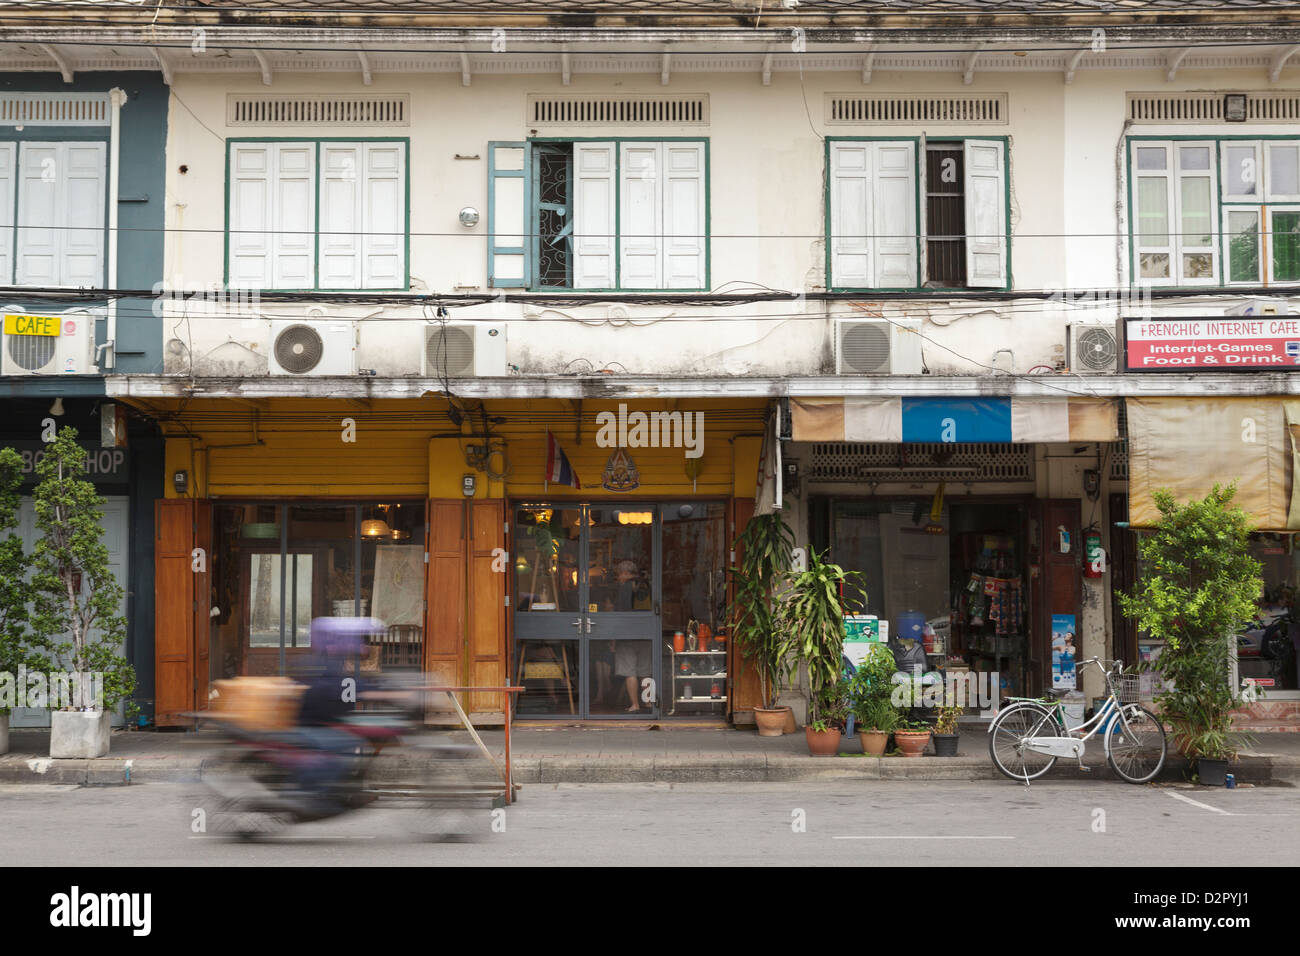 A motorbike rides past a shop front in Rattanakosin, Bangkok, Thailand, Southeast Asia, Asia - Stock Image